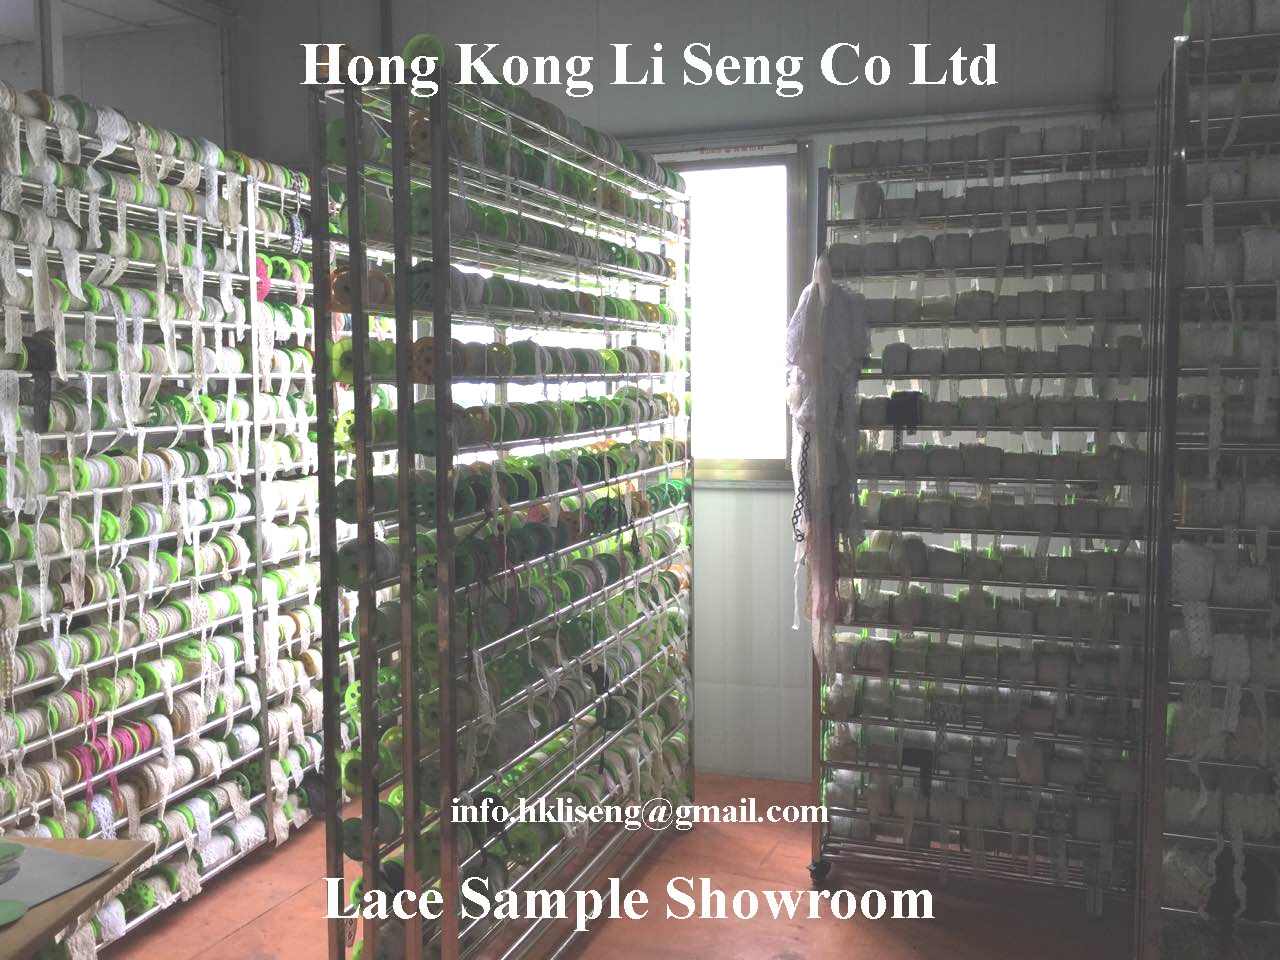 Lace Sample Showroom